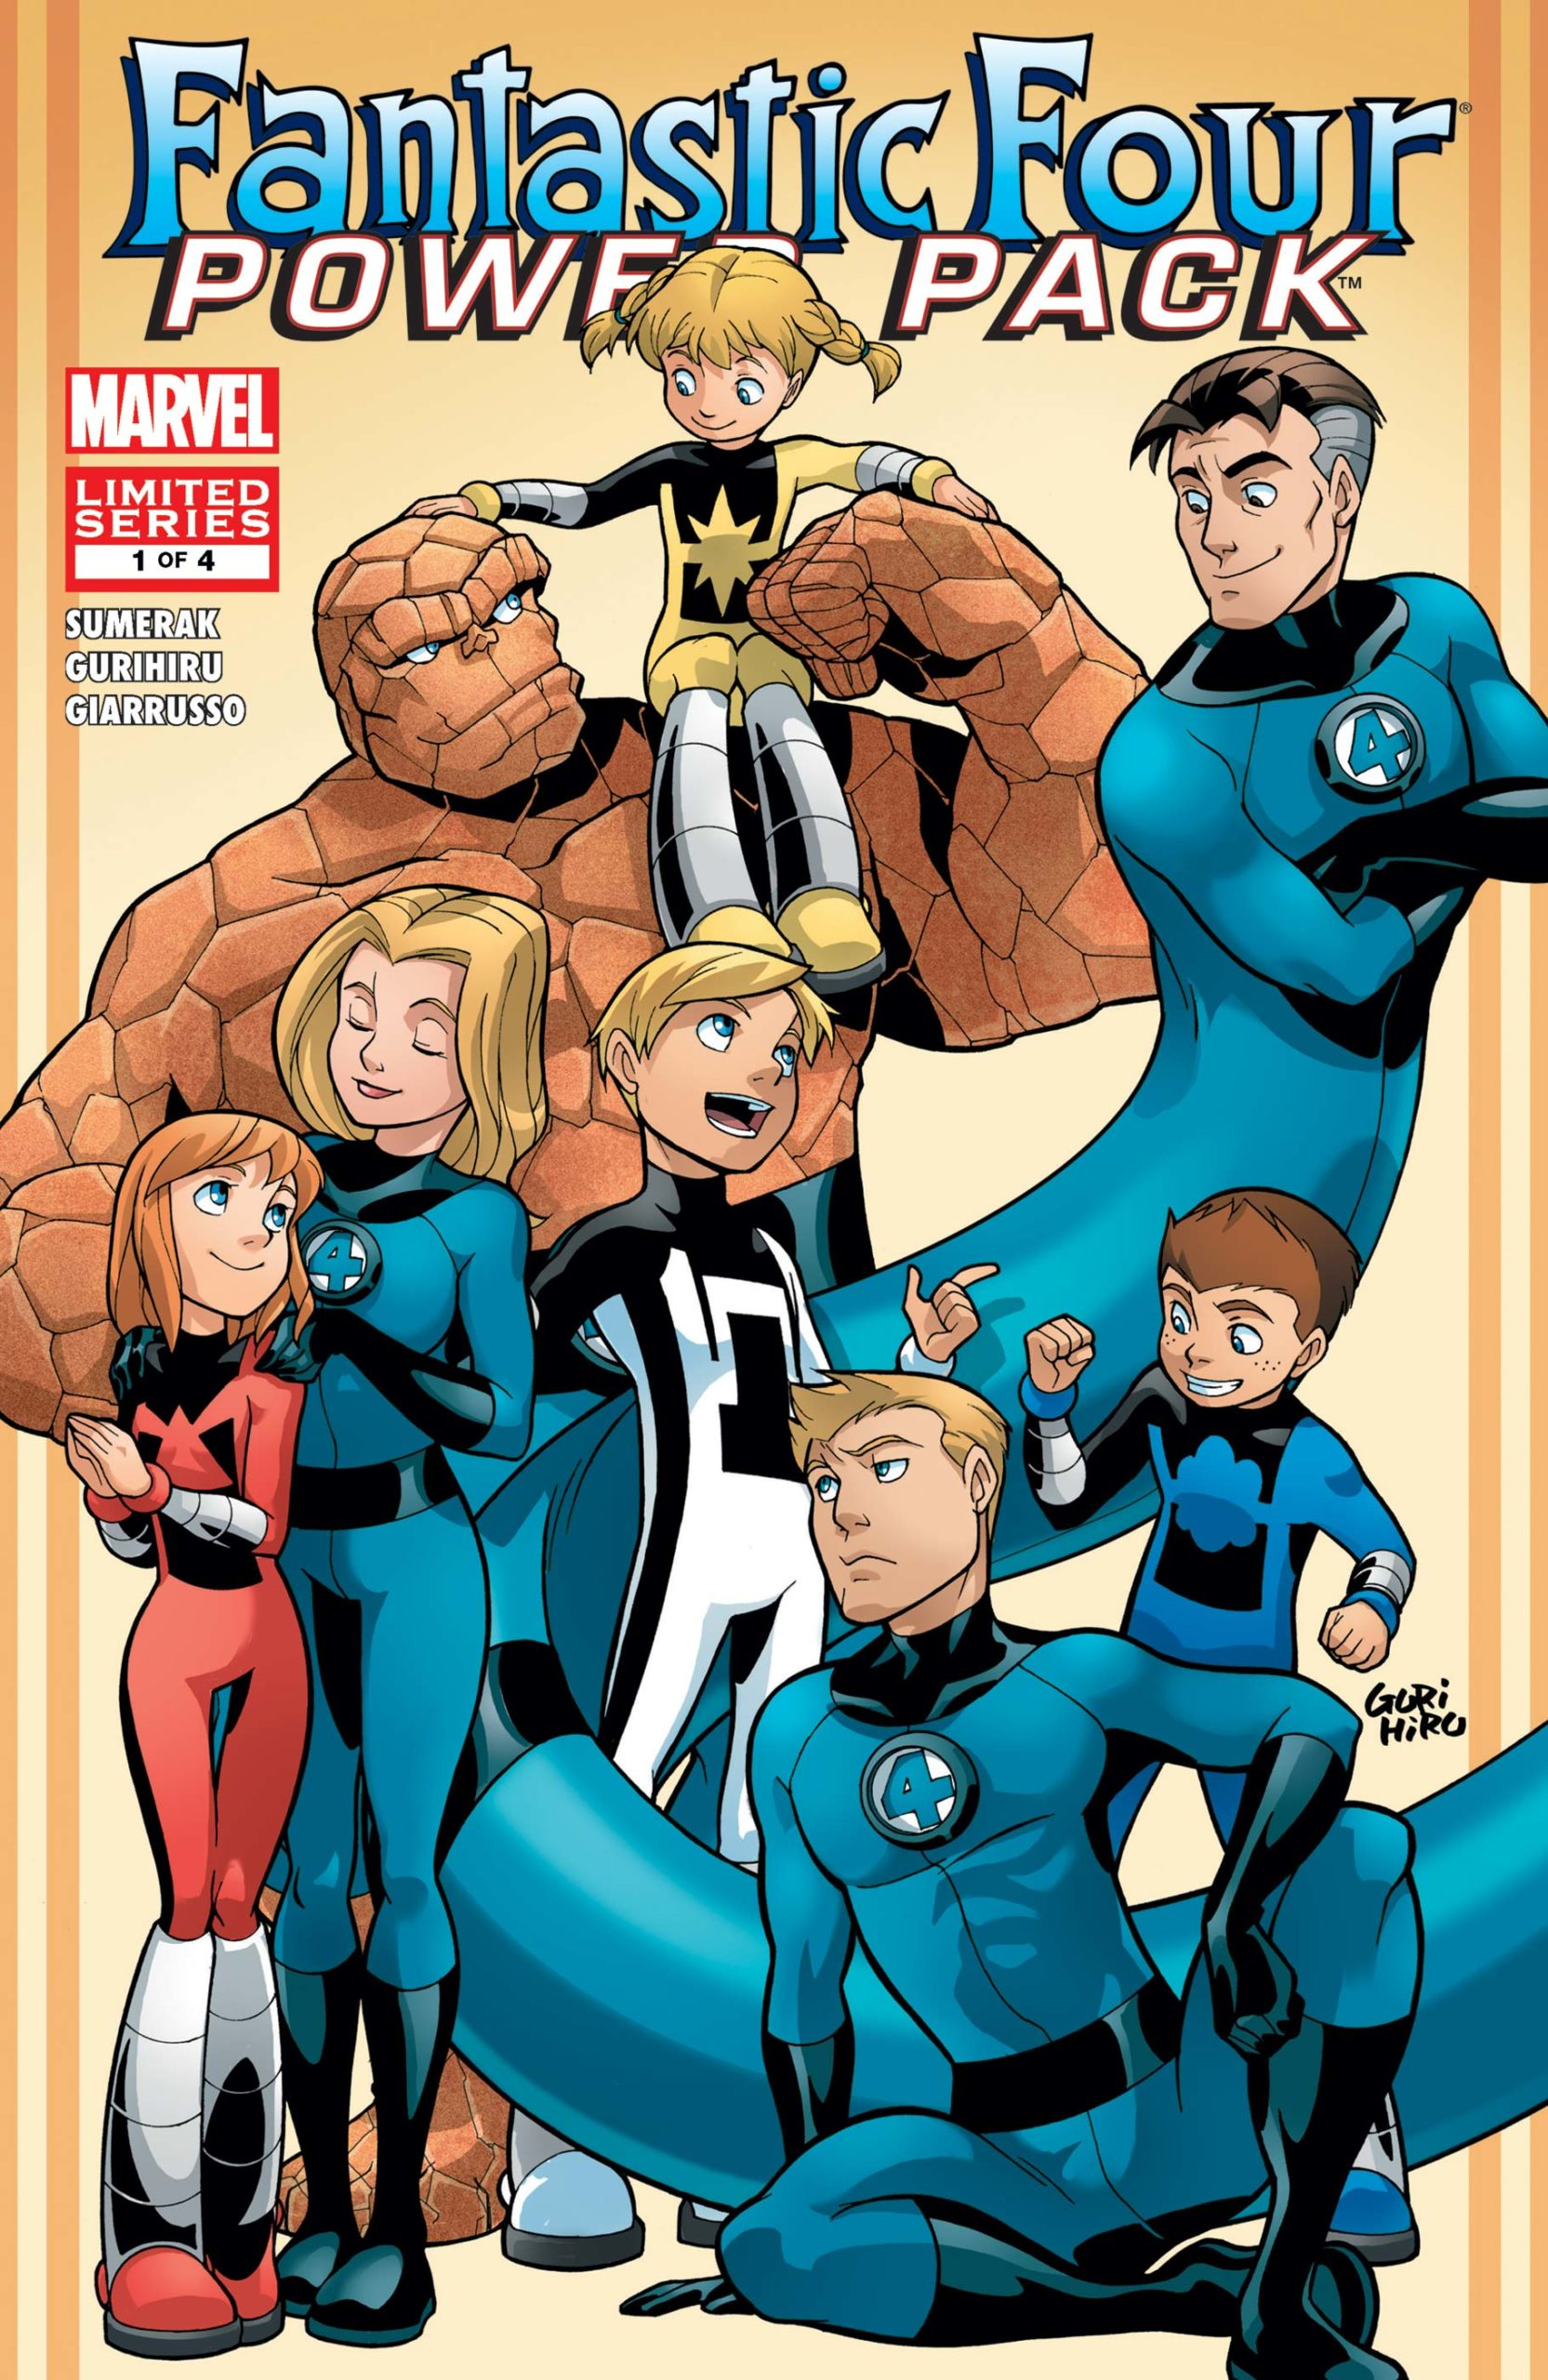 Fantastic Four and Power Pack #1 Get Caught Reading